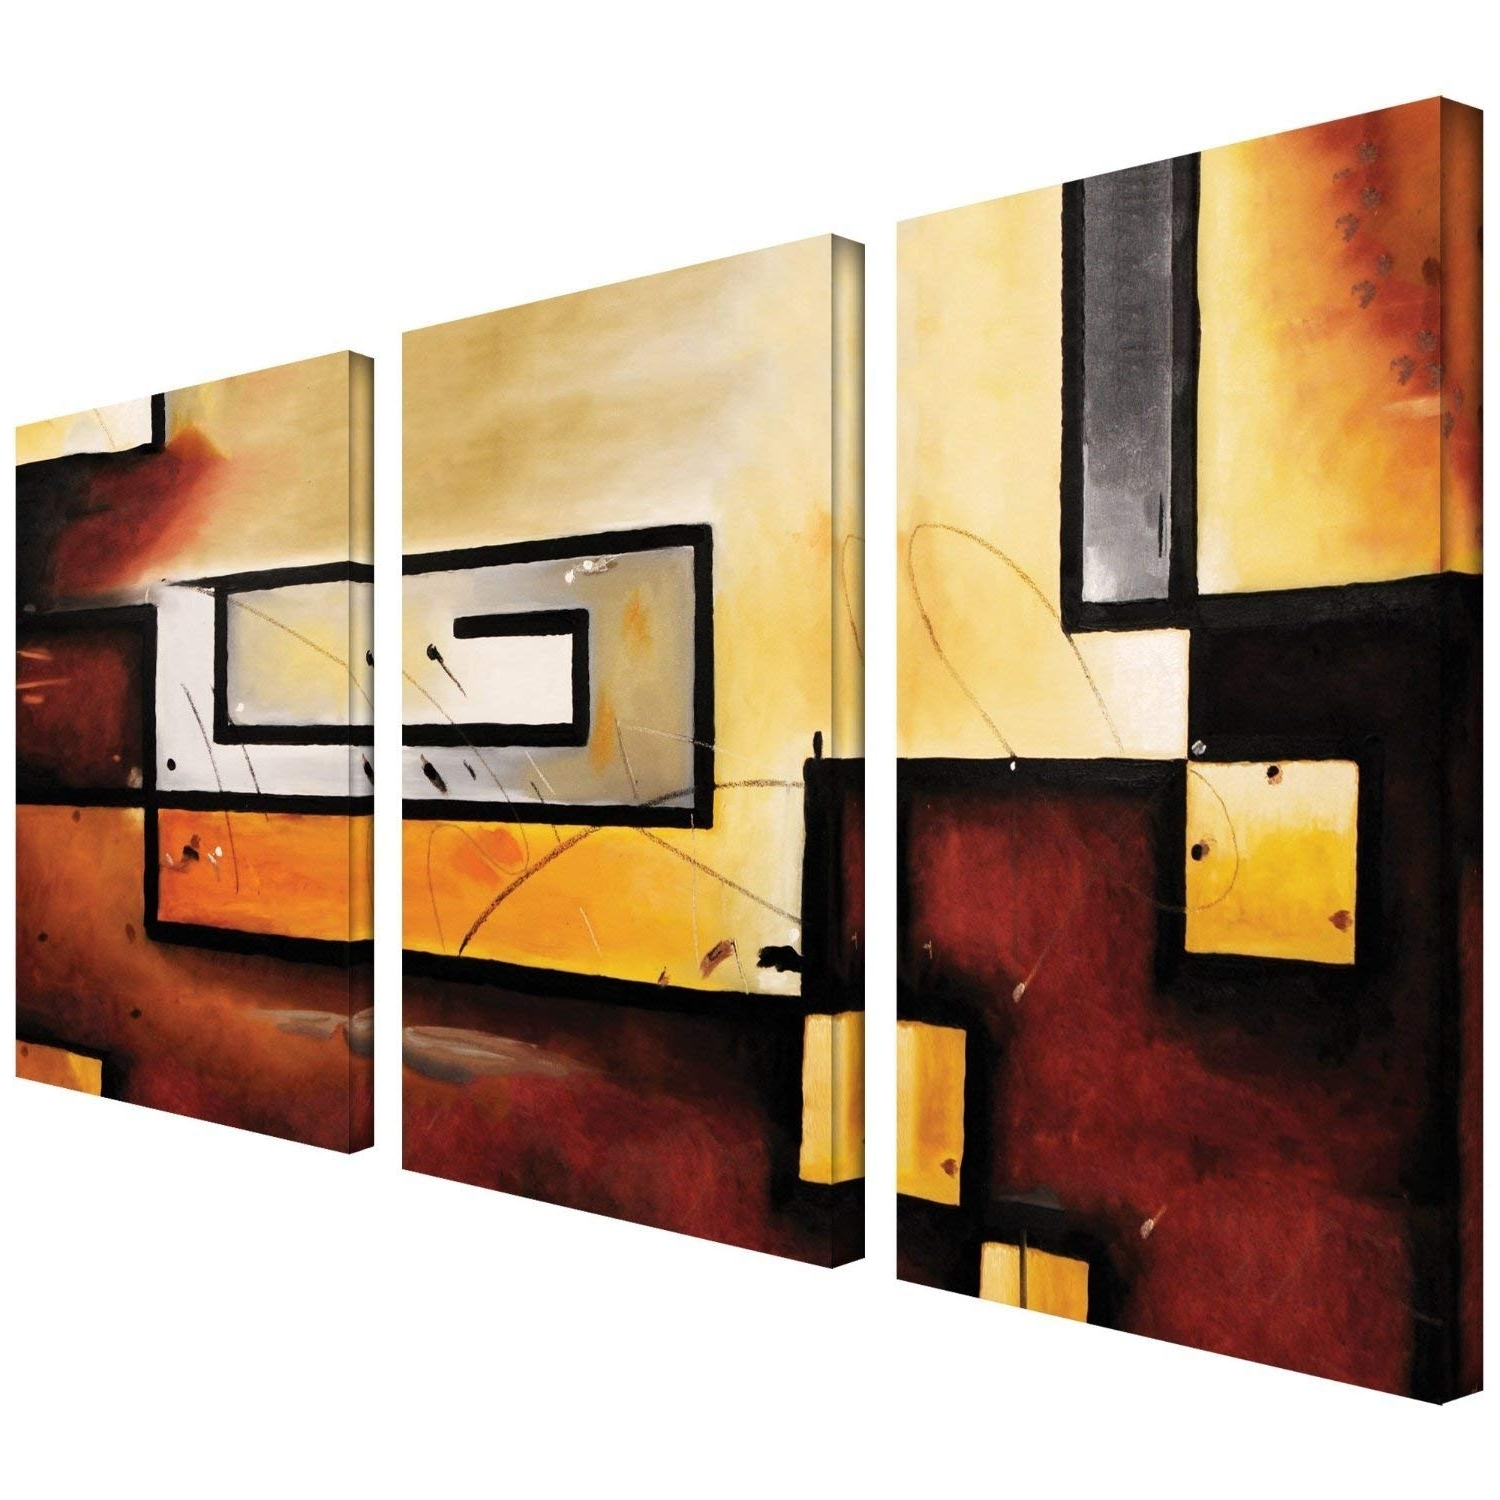 Widely Used Modern Canvas Wall Art With Amazon: Art Wall 3 Piece Abstract Modern Gallery Wrapped Canvas (View 15 of 15)